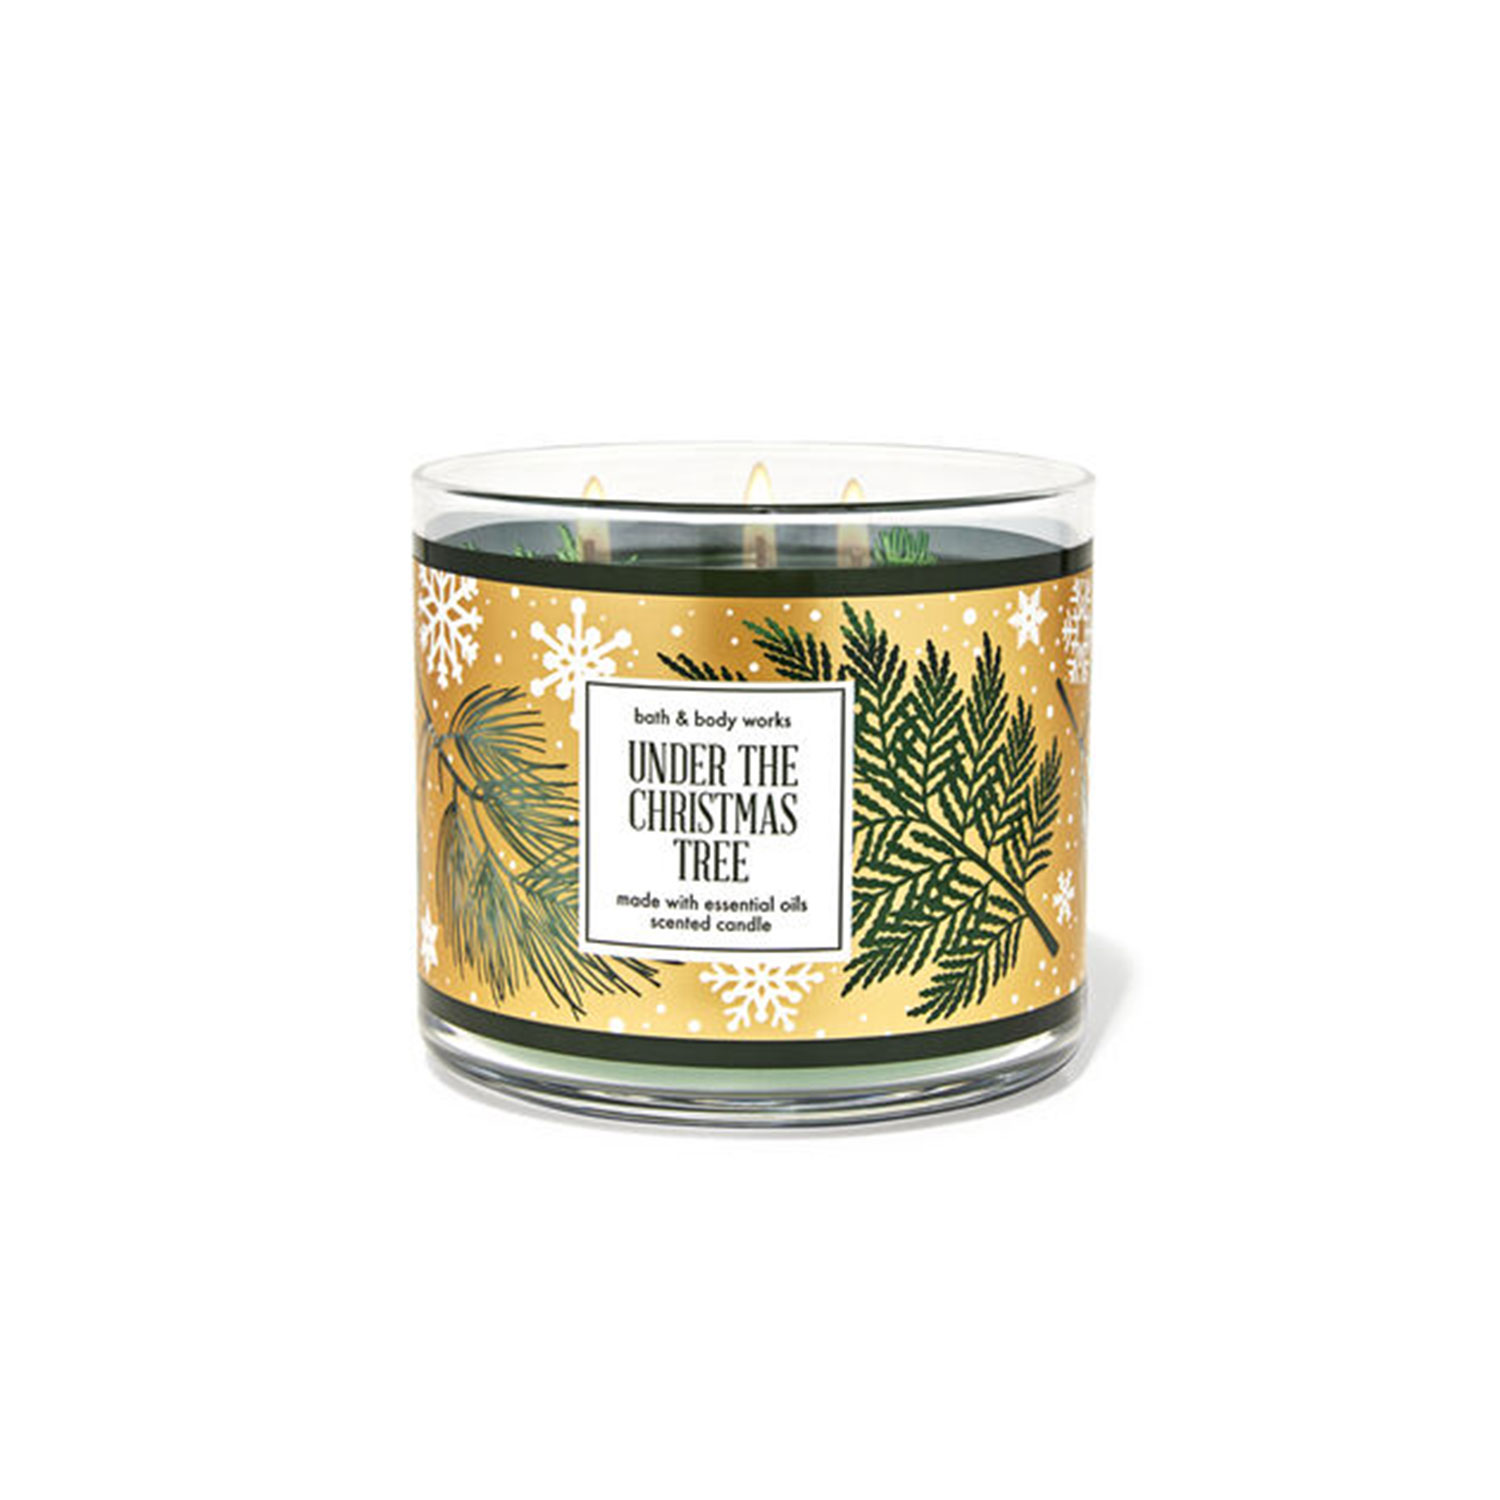 Under the Christmas Tree 3-Wick Candle